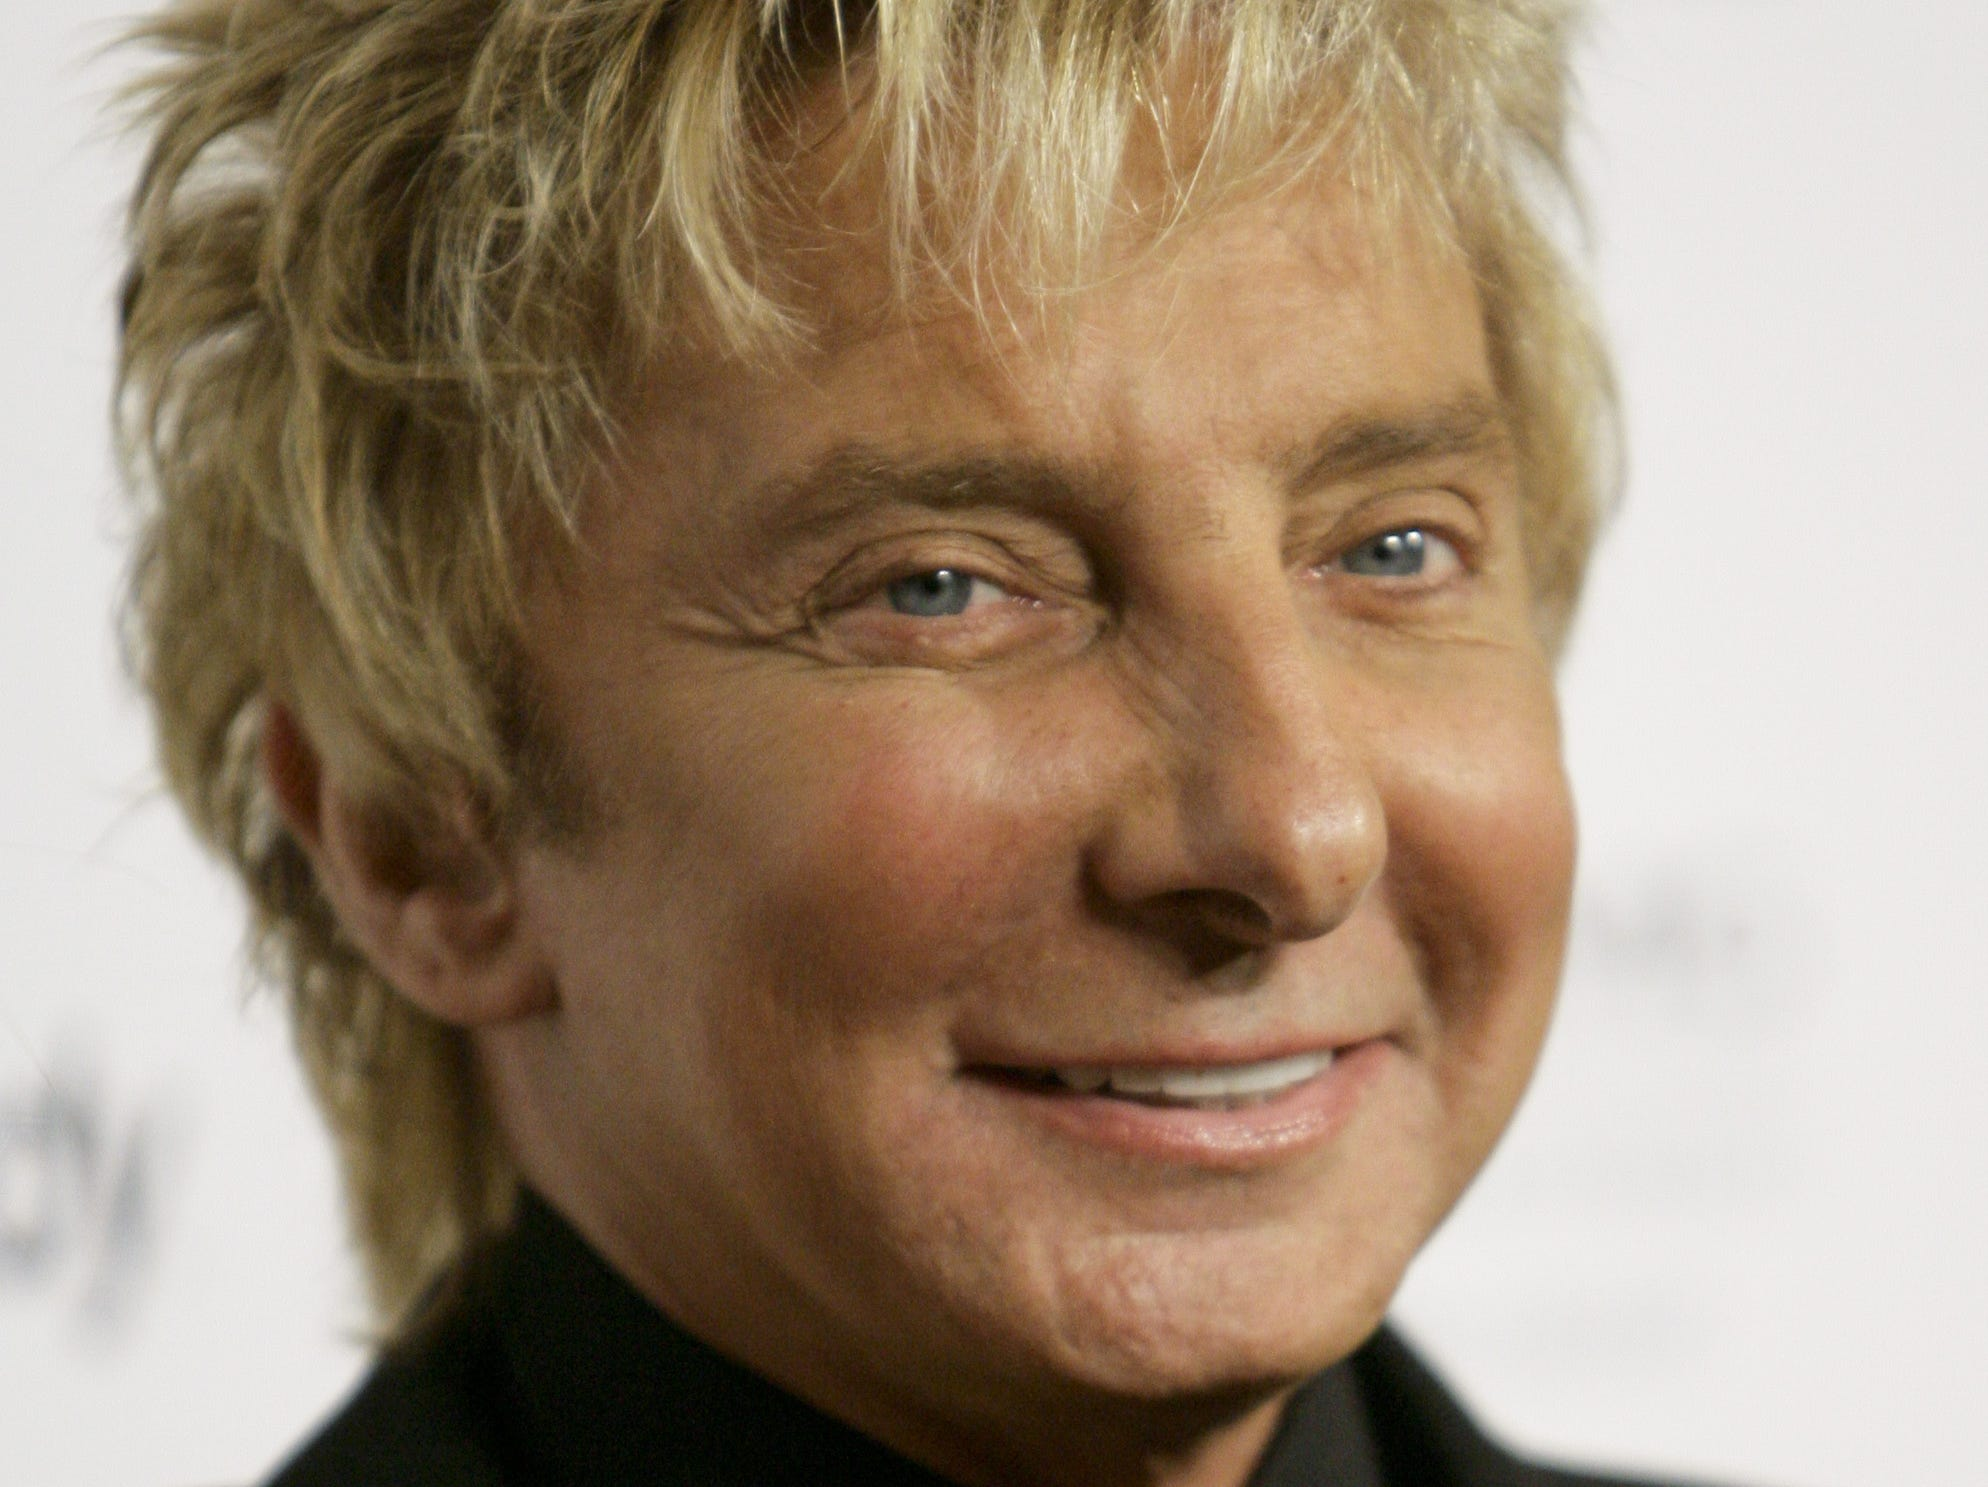 Barry Manilow arrives for the Clive Davis Pre-Grammy Party in Beverly Hills, Calif., Saturday, Feb. 10, 2007.